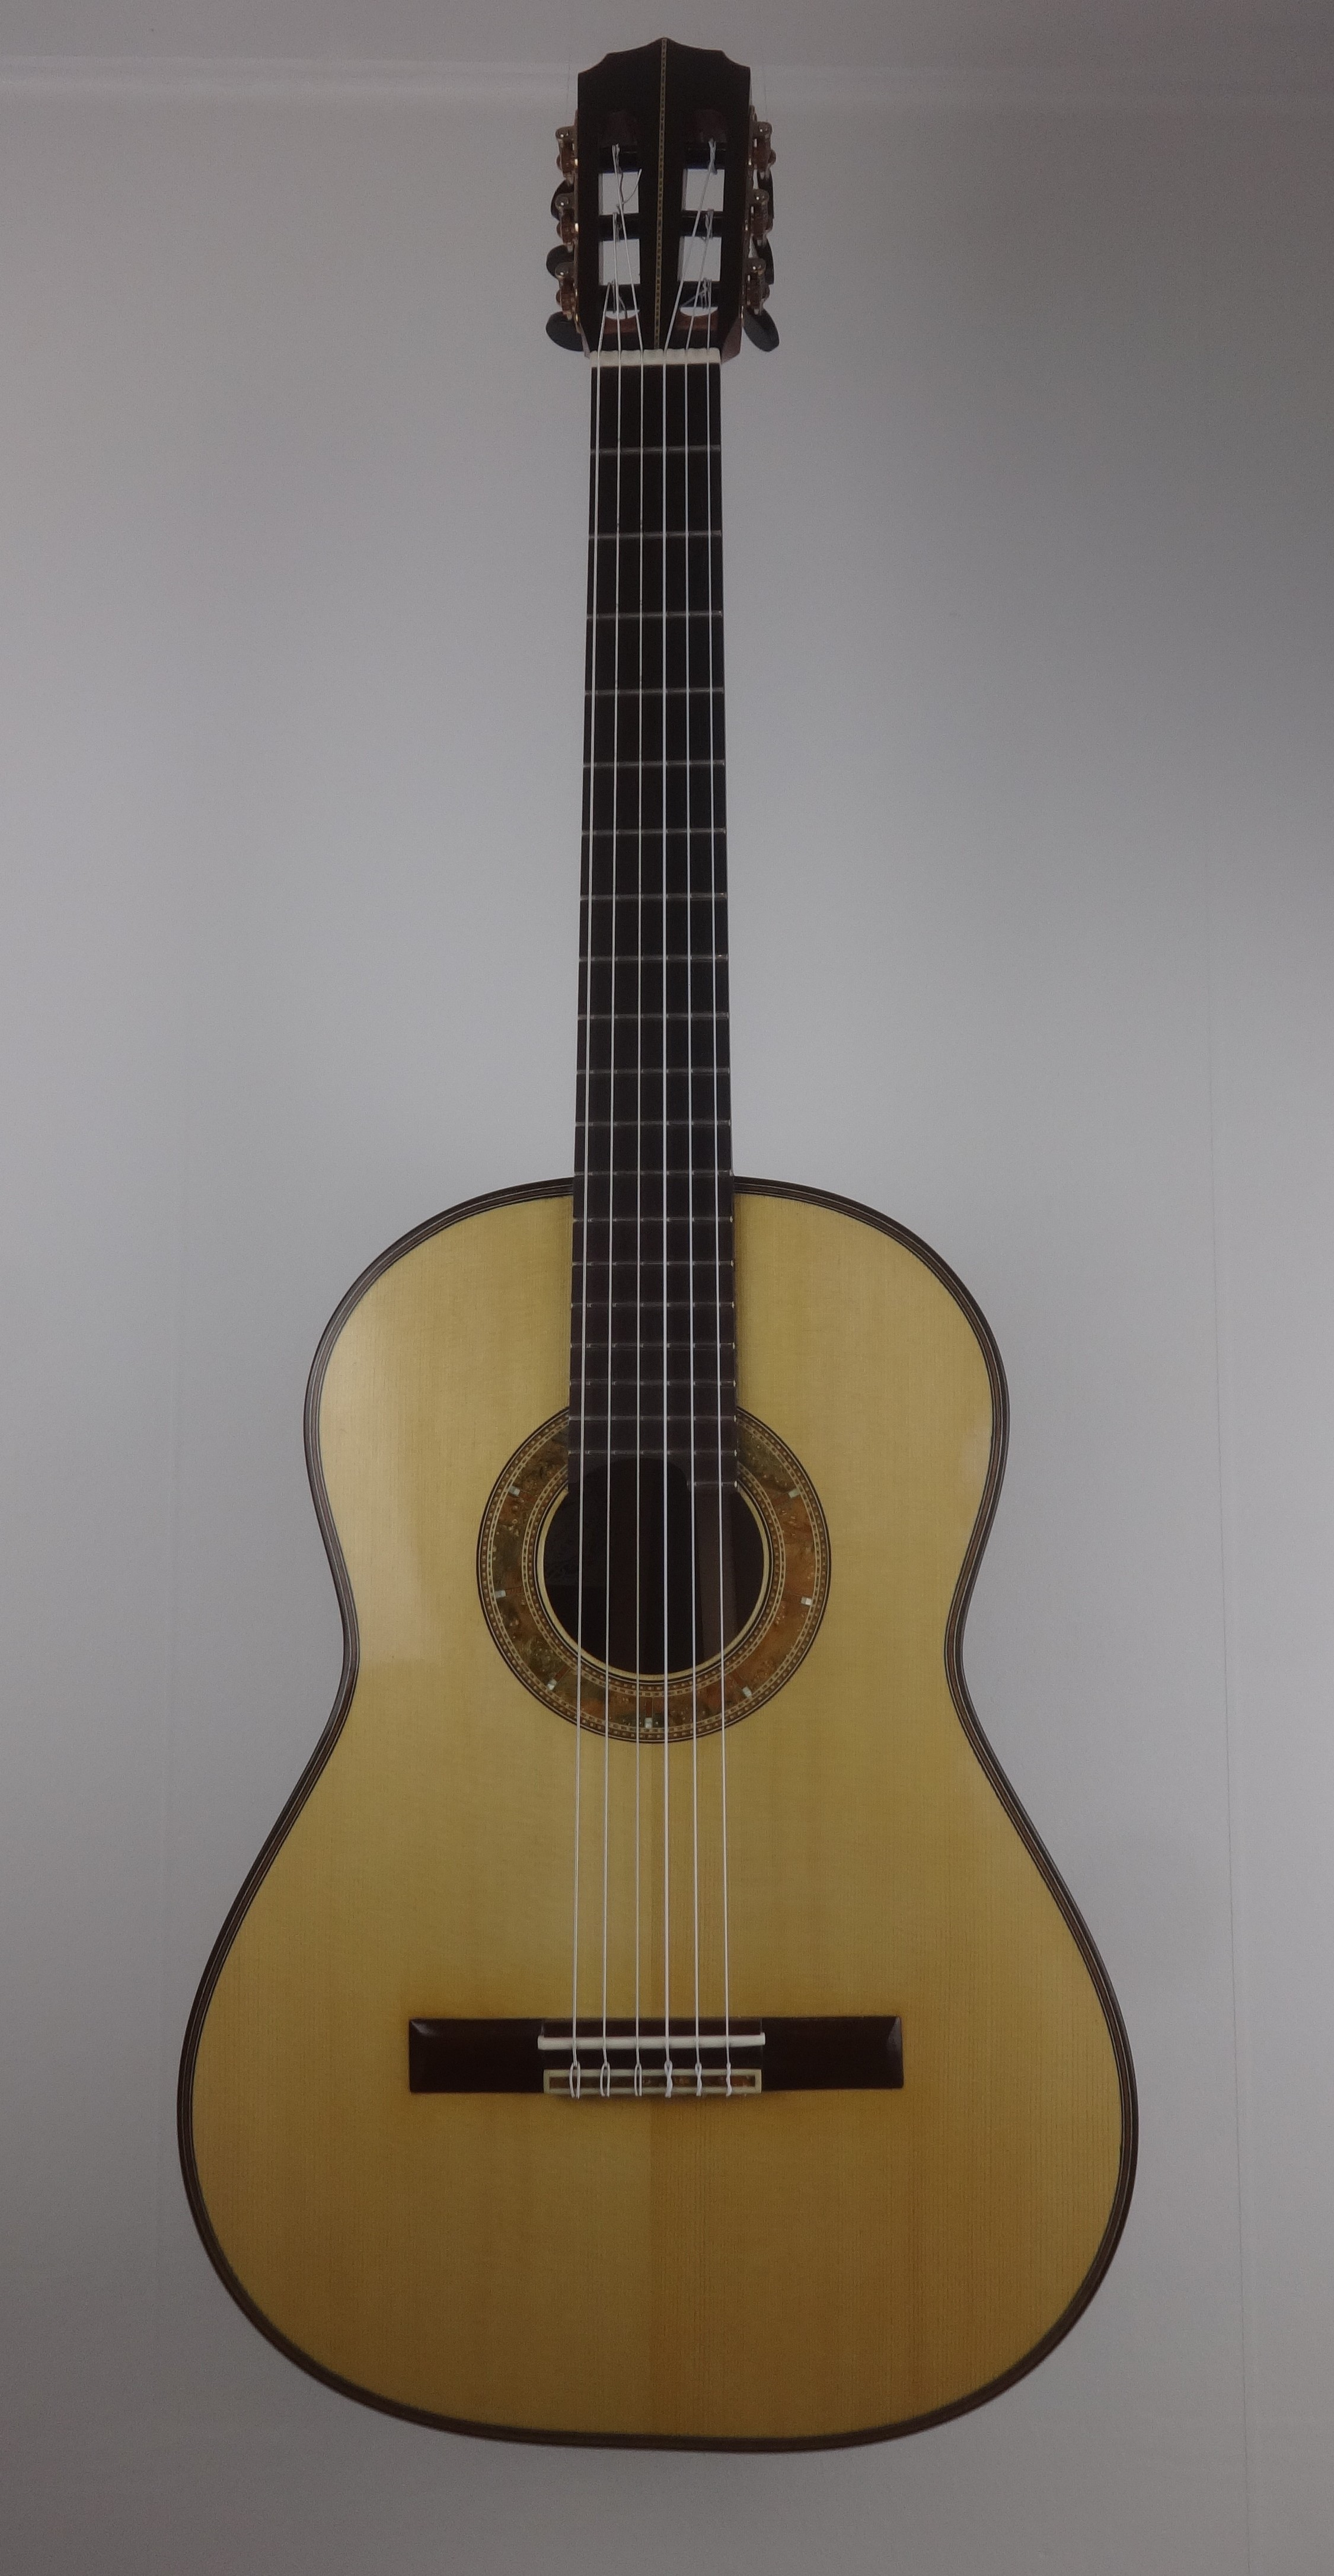 European spruce top with special rosette. 21 frets.